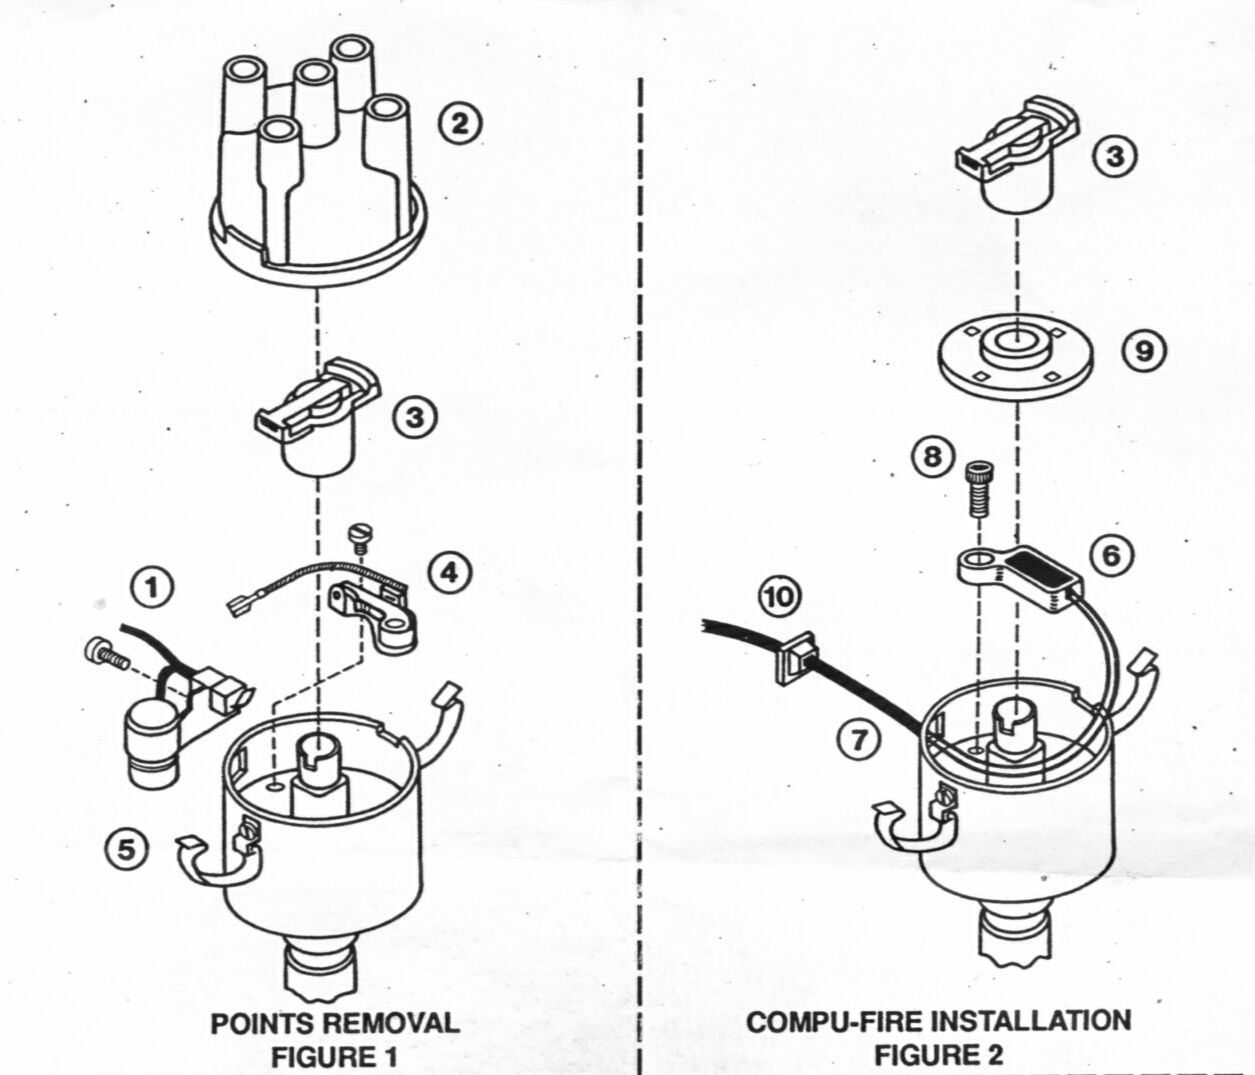 Vw Bug Electronic Ignition Wiring Guide And Troubleshooting Of Ford Model A Diagram 6v Distributor 29 Images 6 Volt Regulator Beetle